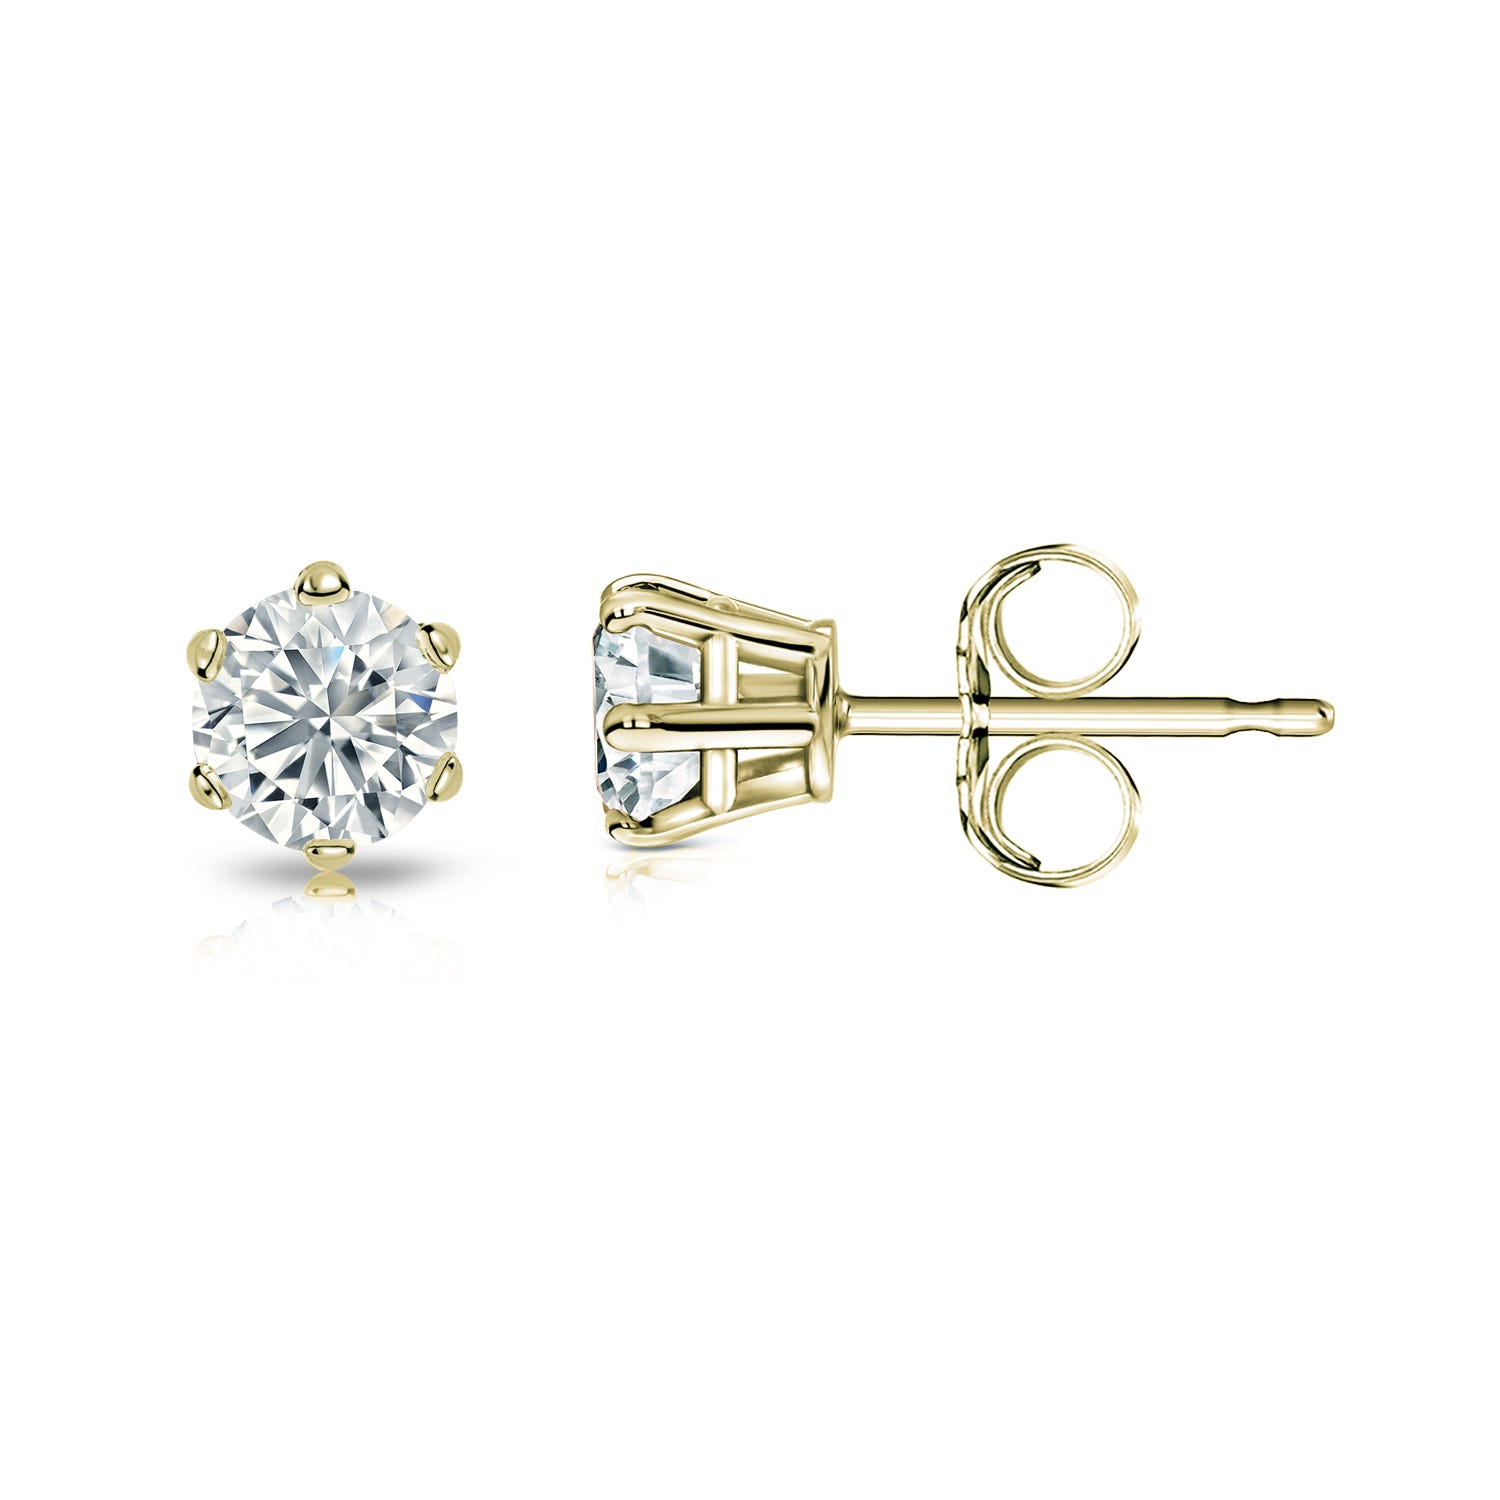 Round Diamond 1/5ctw. (IJ-I2) Solitaire Stud 6-Prong Earrings in 14K Yellow Gold